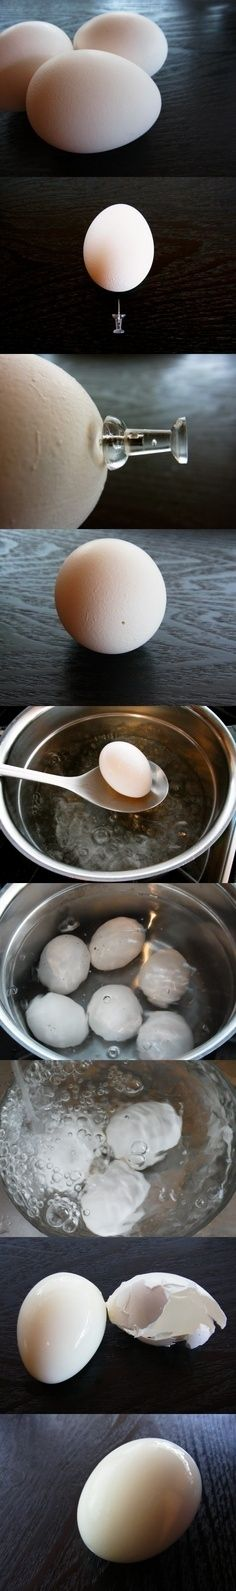 Use a thumbtack to poke a hole in the shell and create awesome boiled eggs